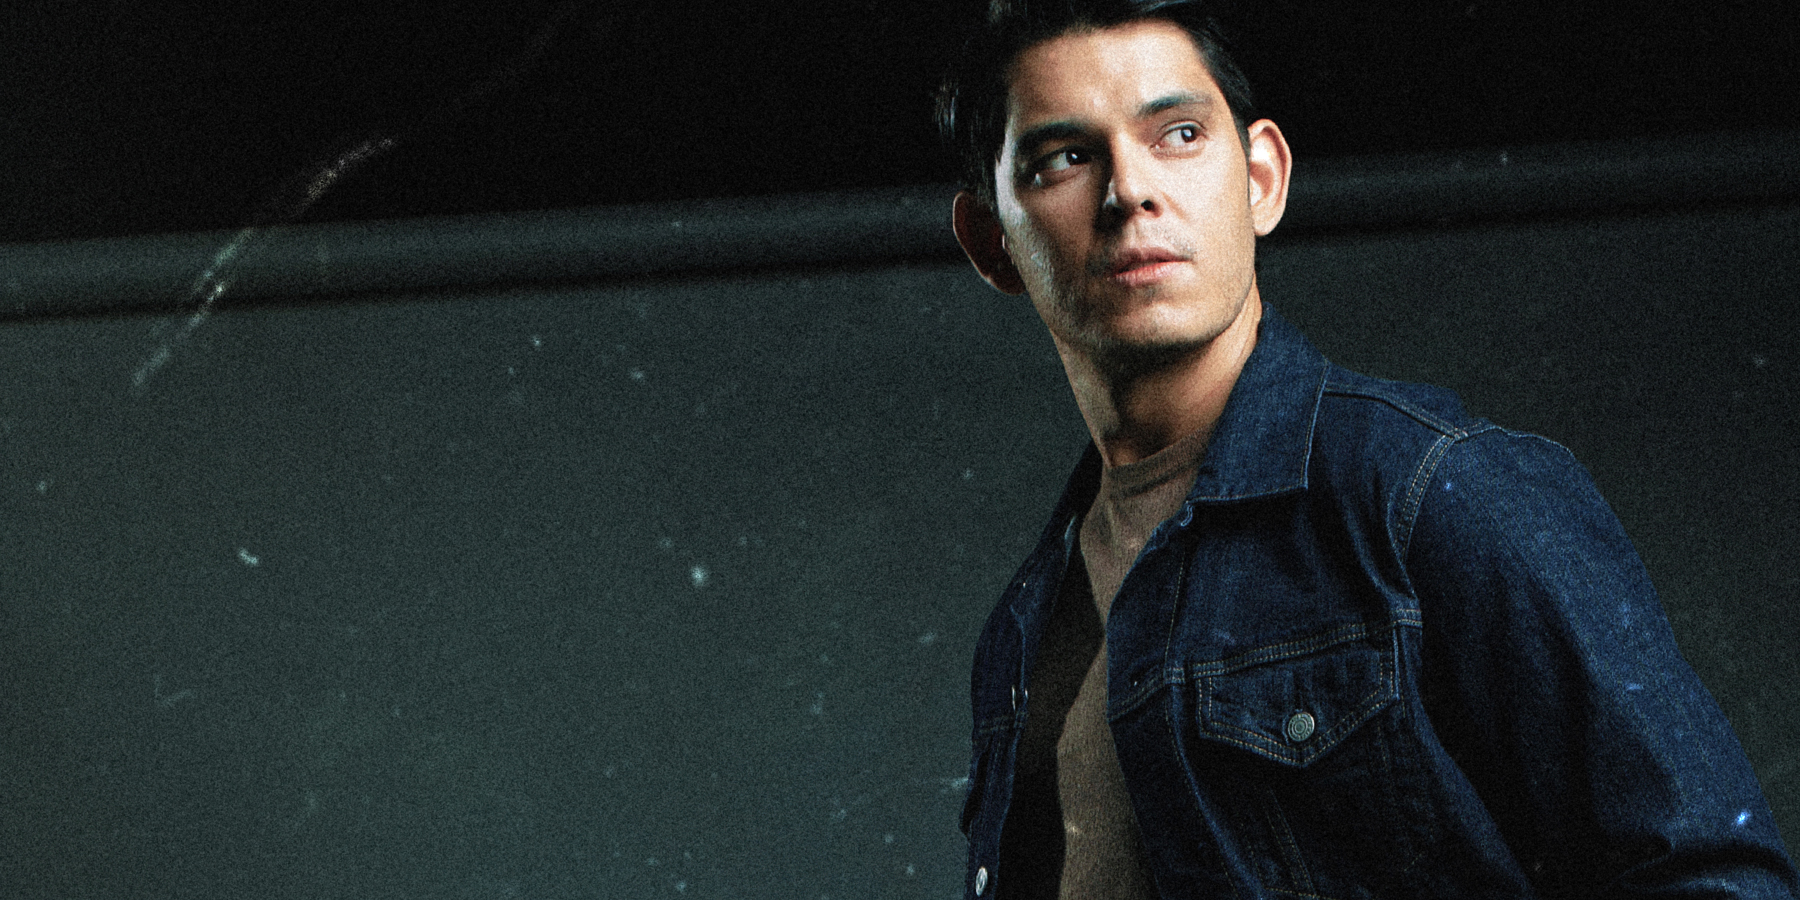 The Unbreakable Richard Gutierrez